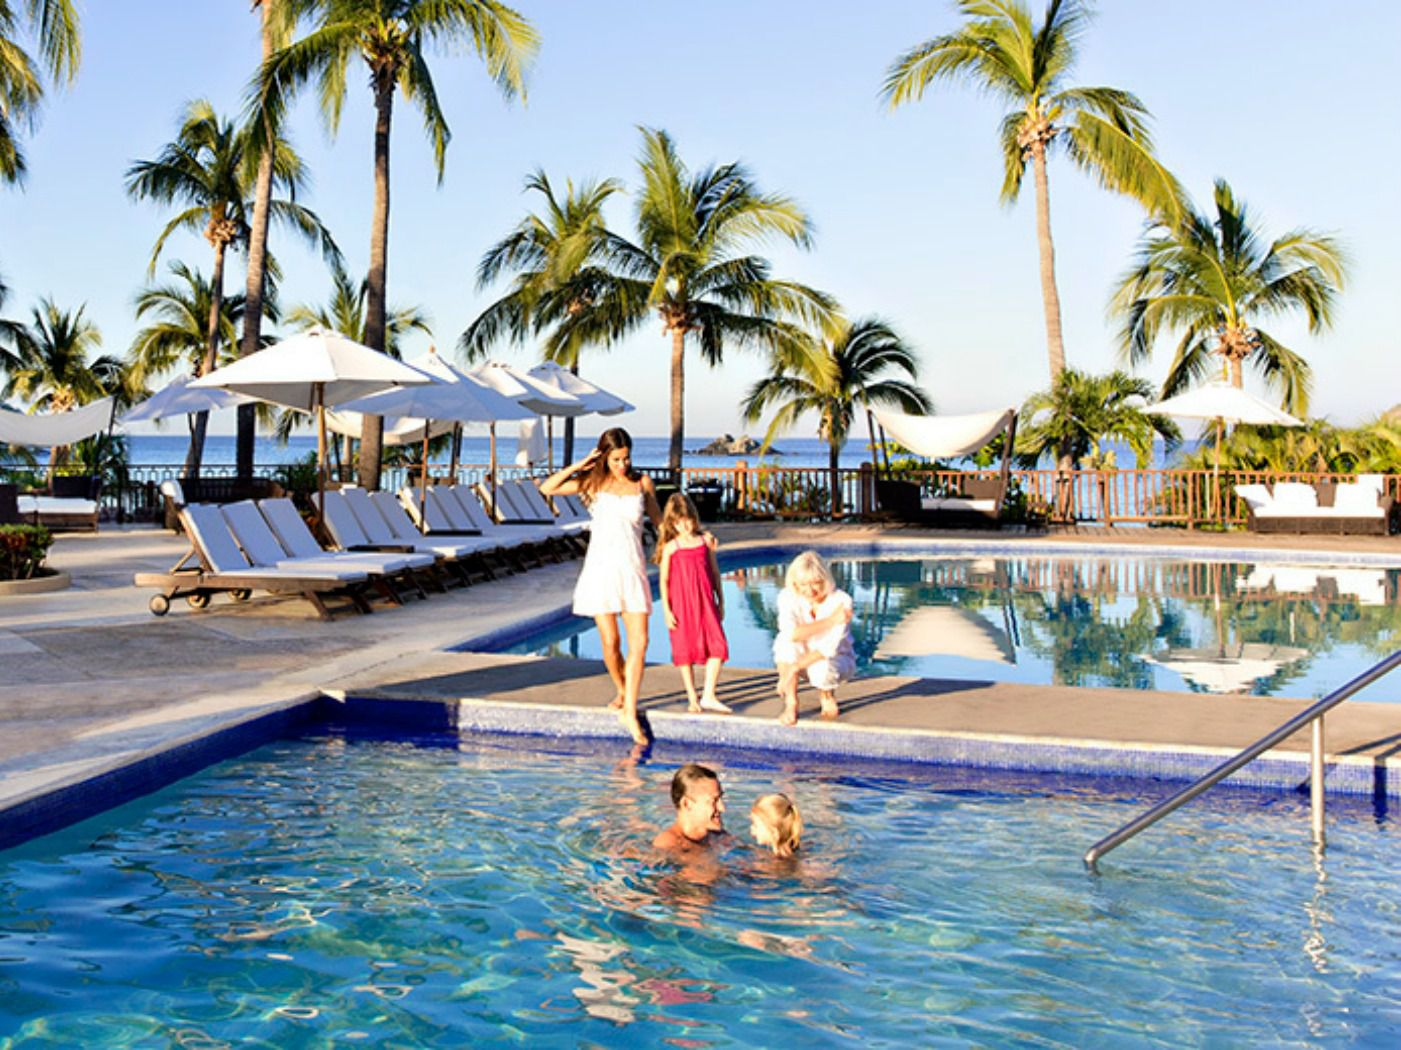 Club med ixtapa pacific all inclusive resort in mexico for Mediterranean all inclusive resorts